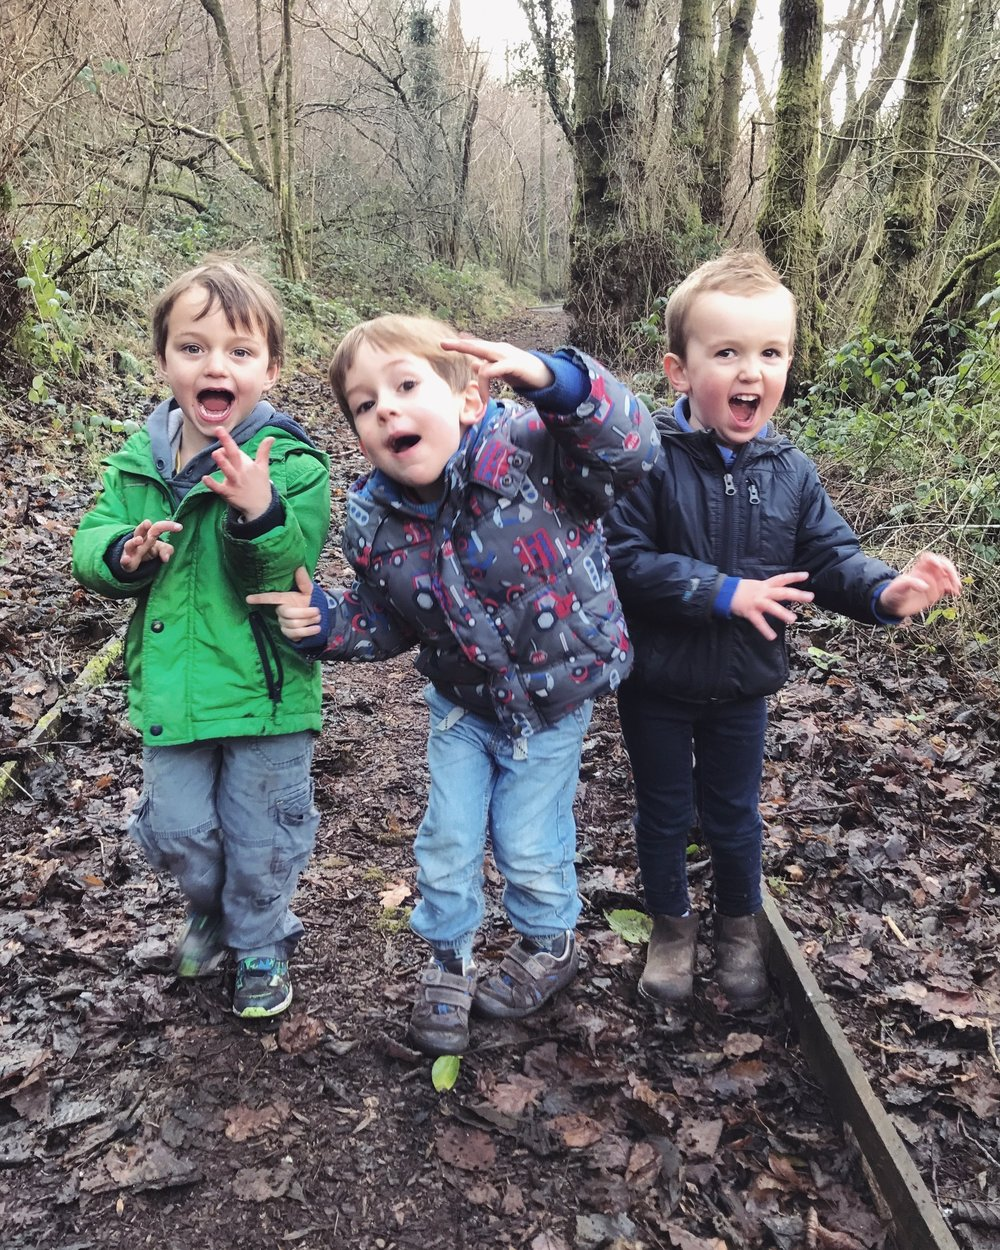 Three toddler boys playing in the forest.